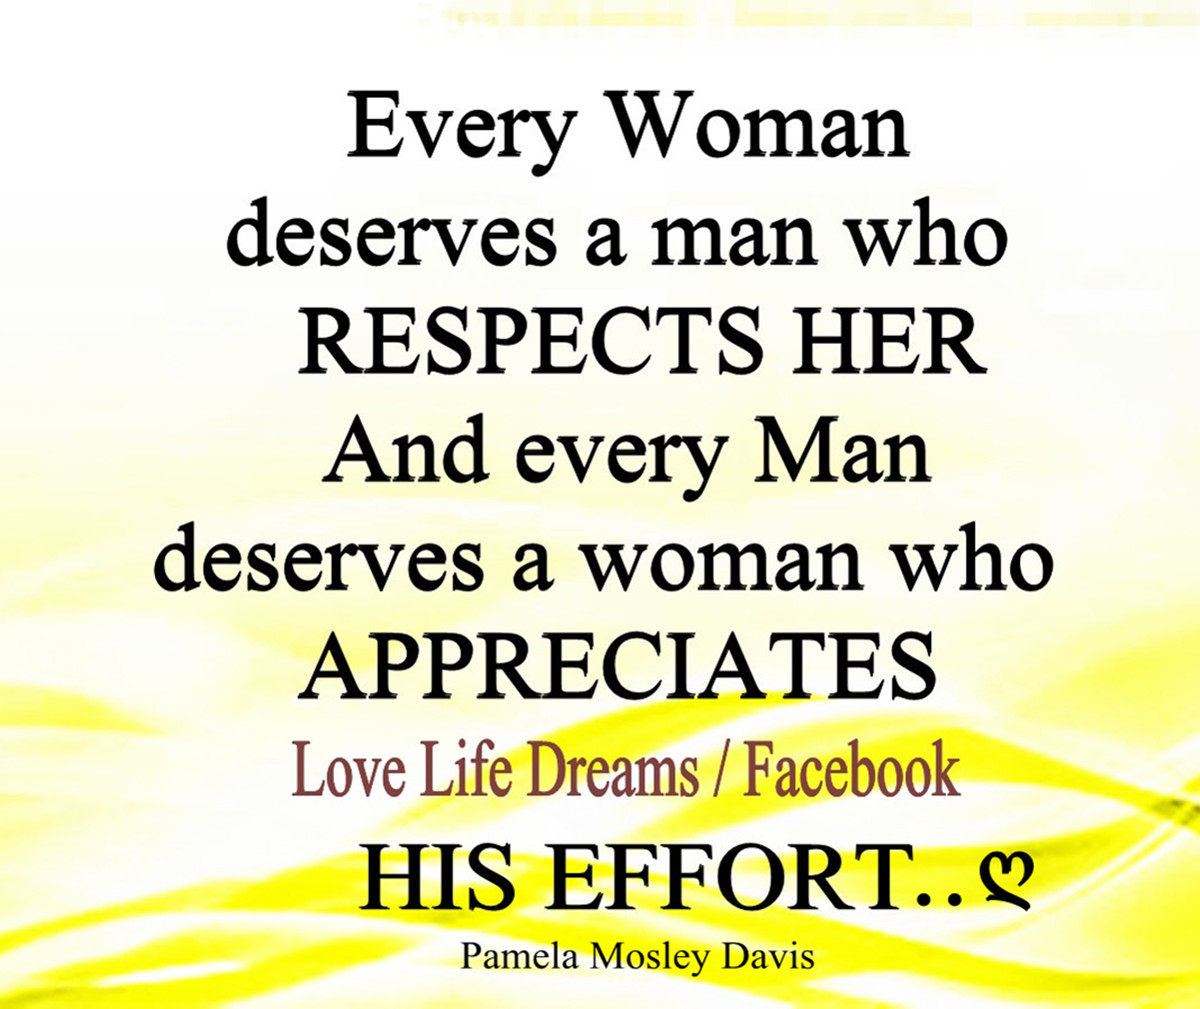 Every man deserves